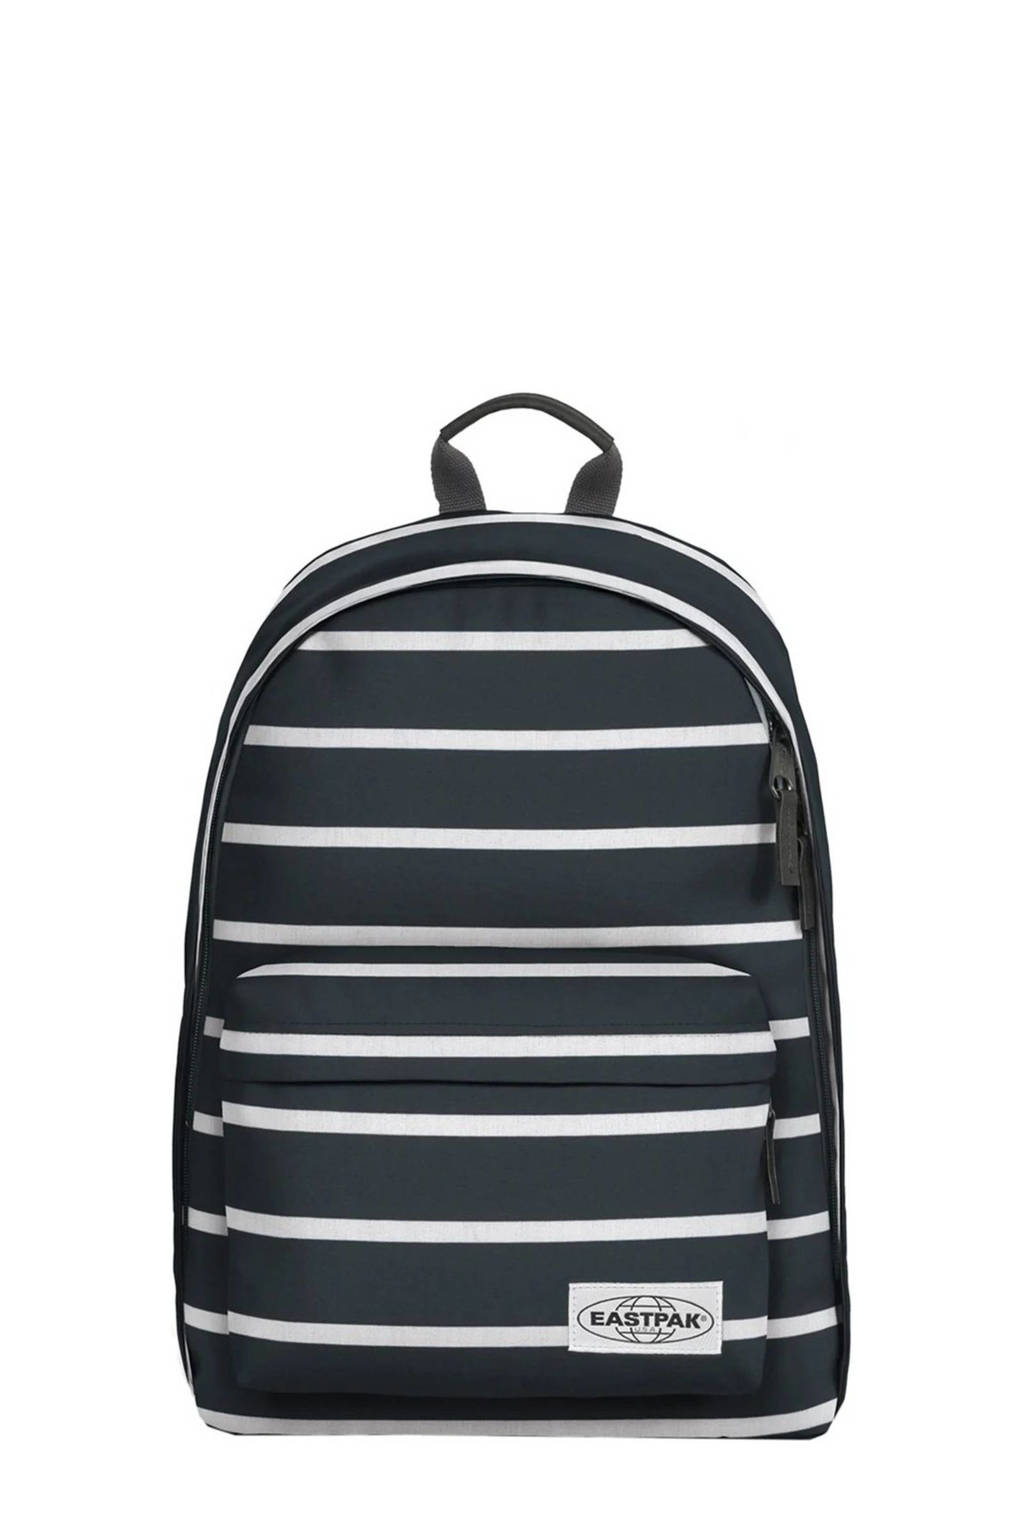 Eastpak  rugzak Out of Office donkerblauw/wit, Donkerblauw/wit